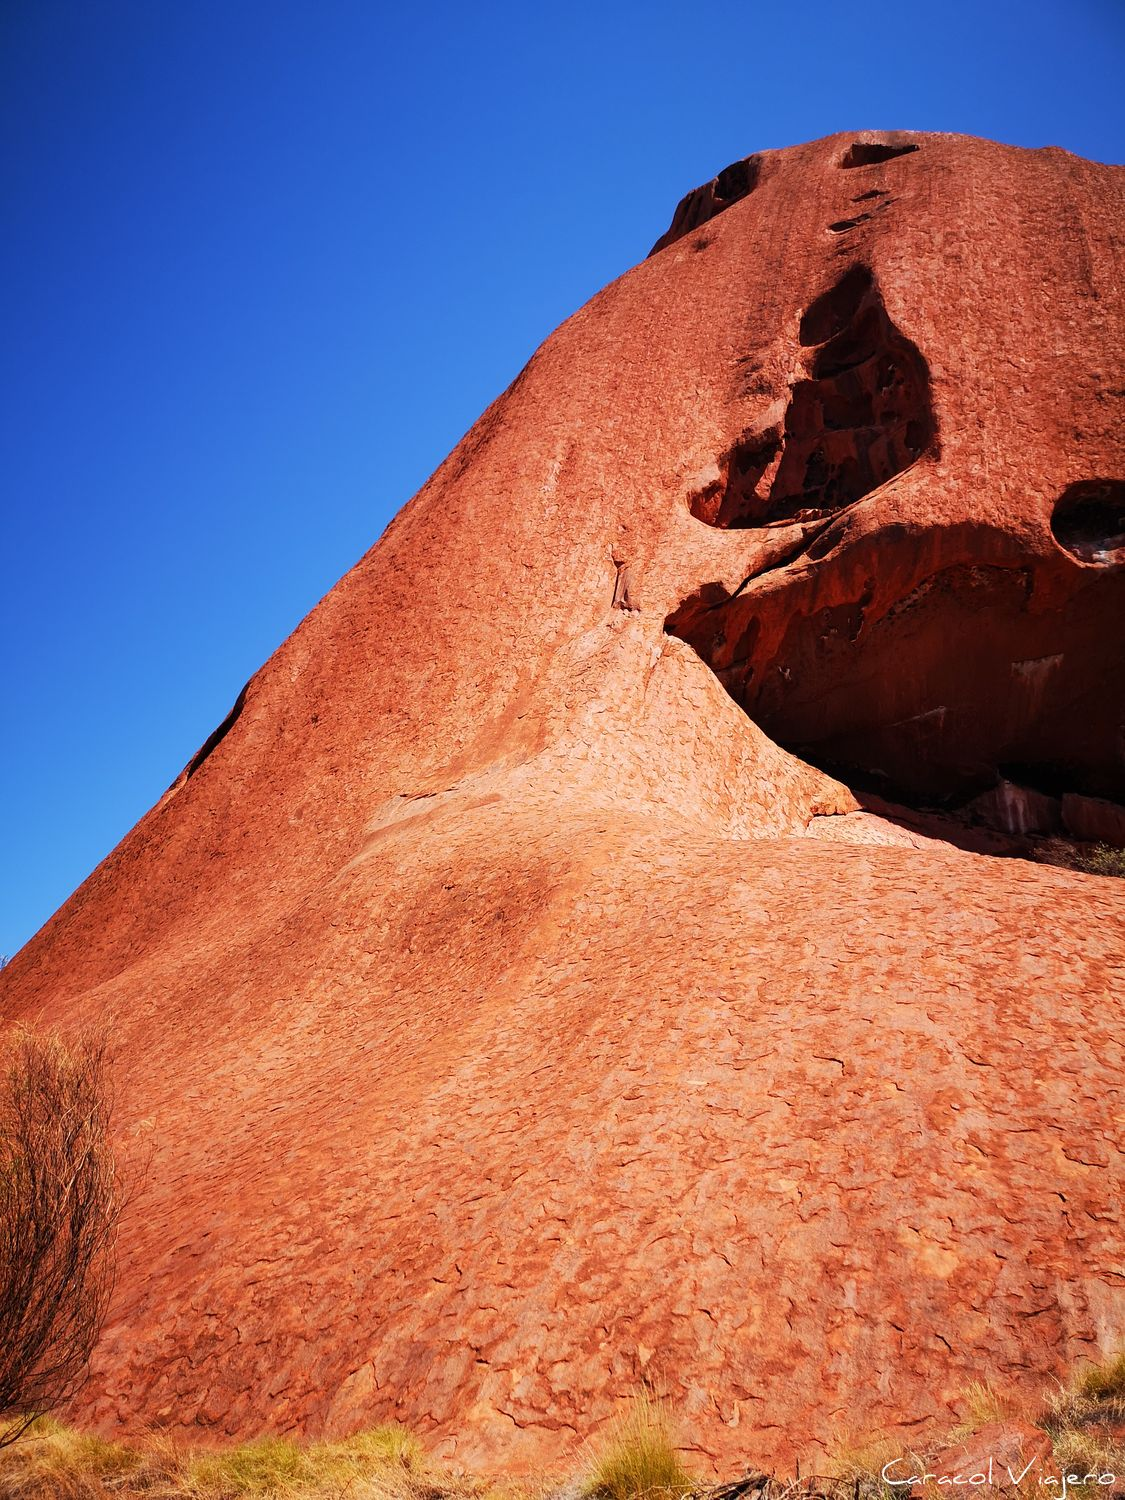 Ayers rock - outback australiano